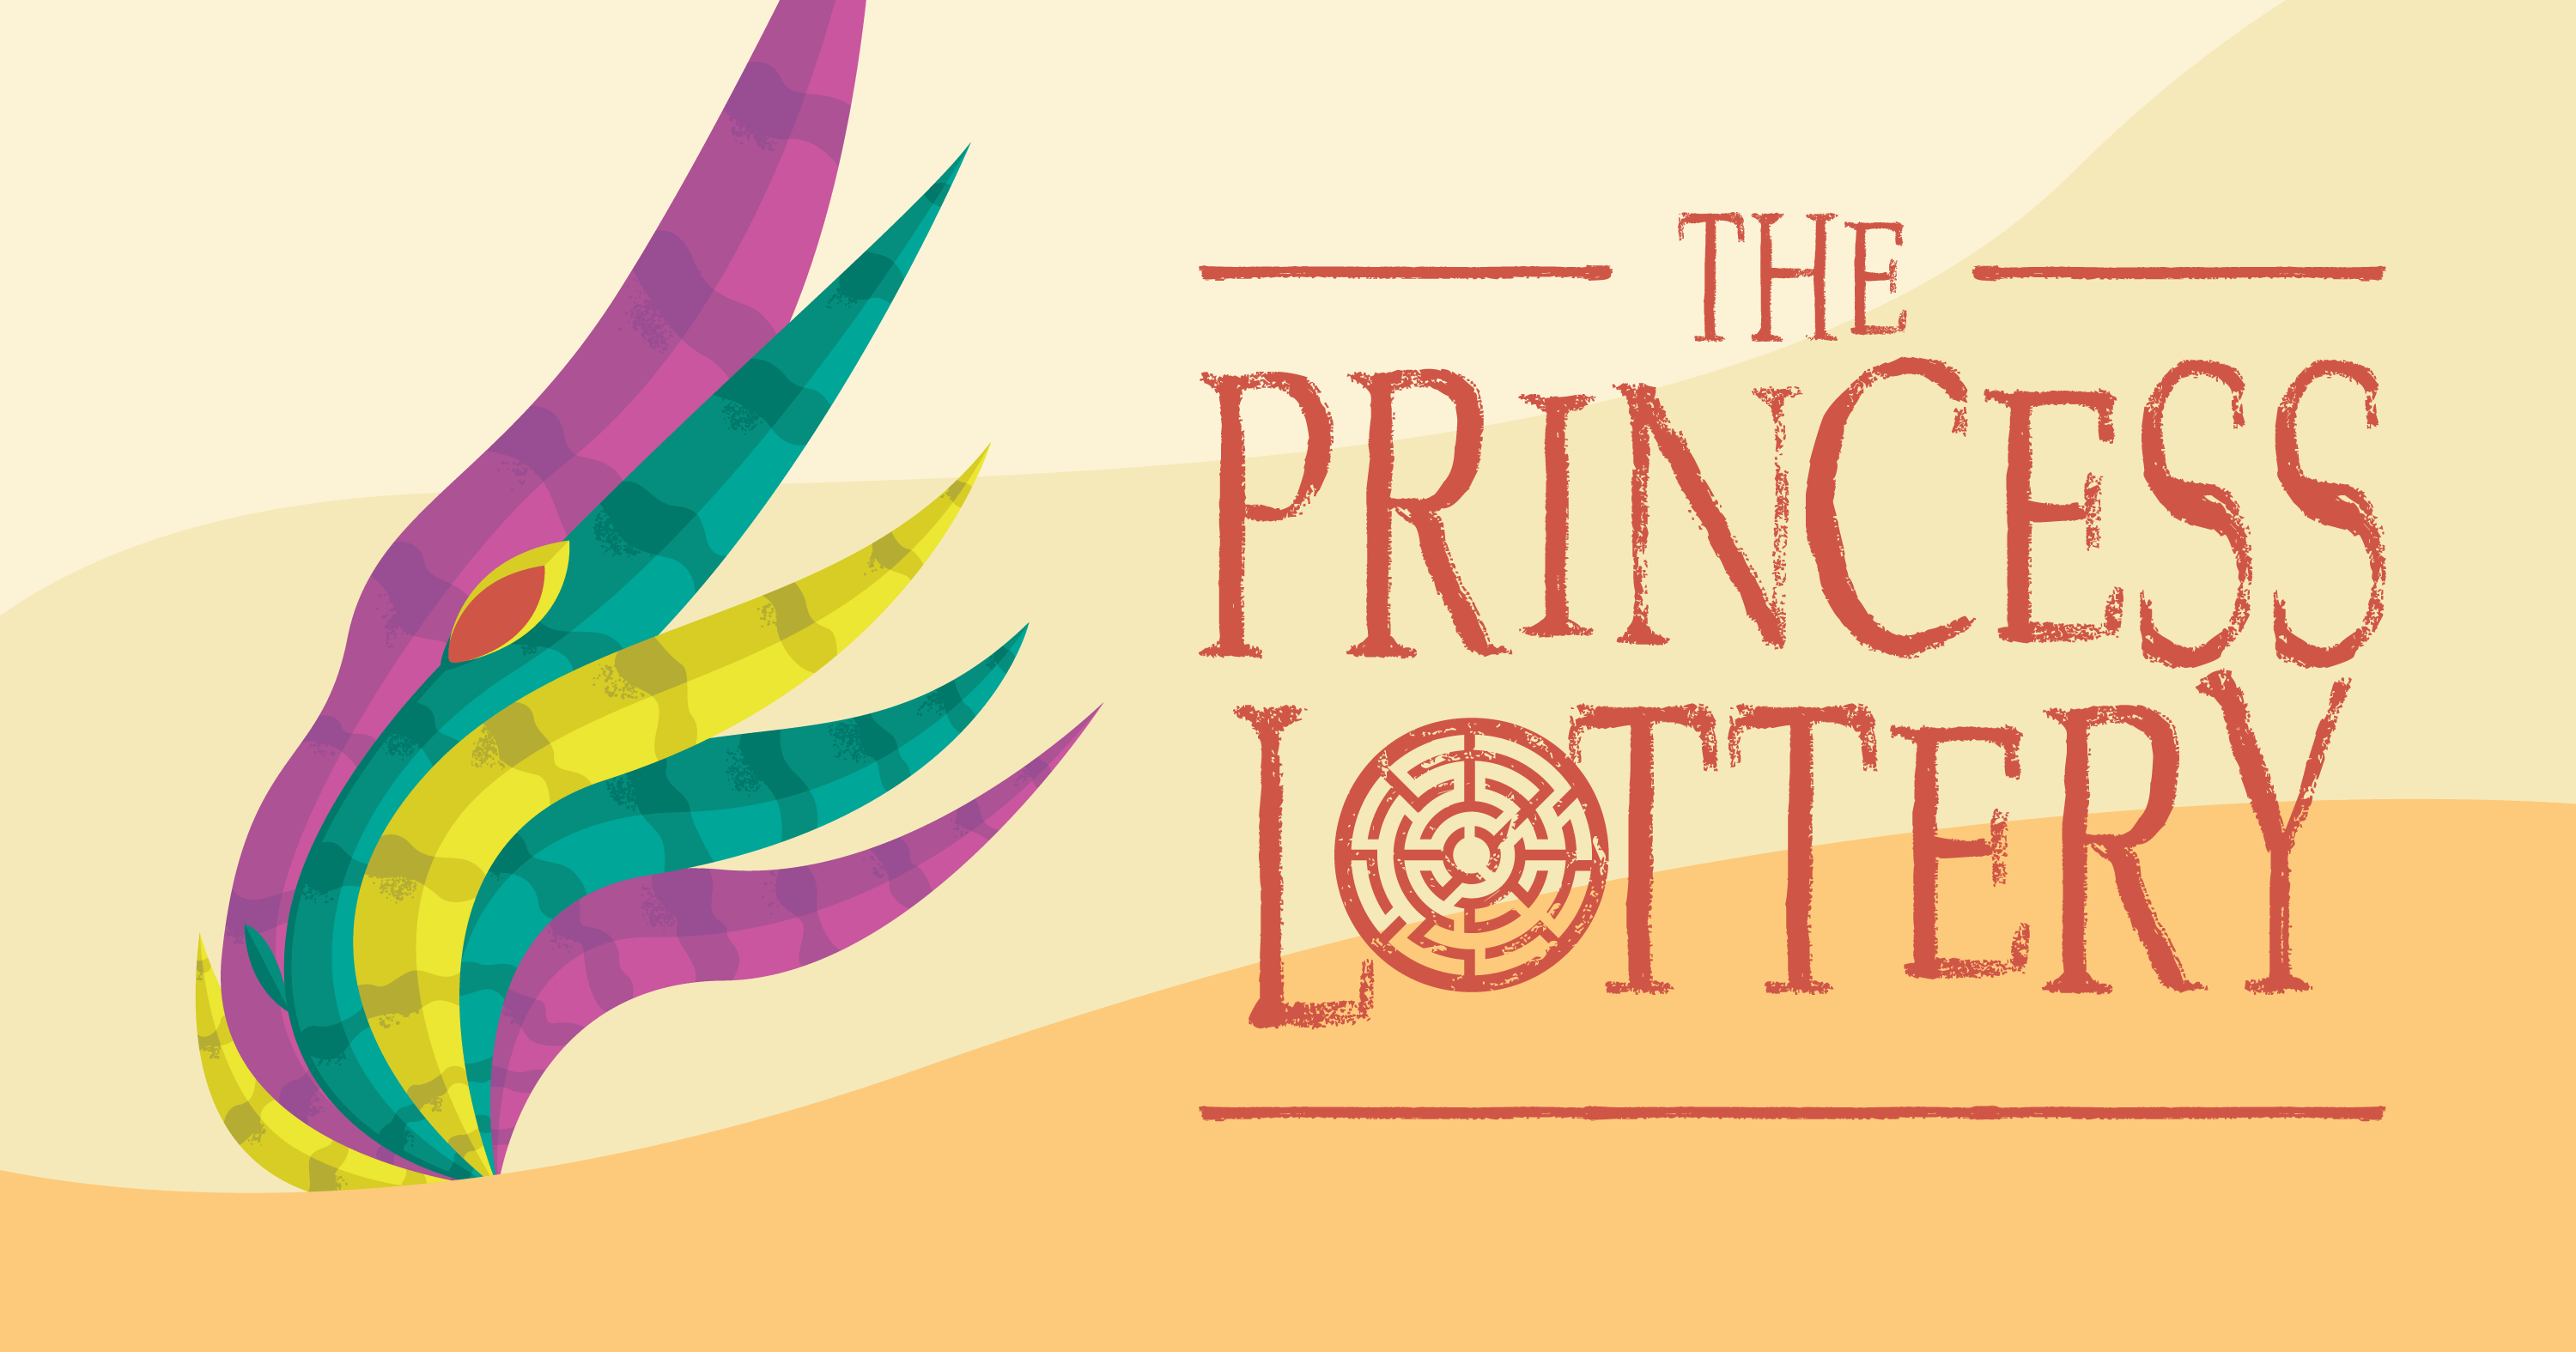 The Princess Lottery by Stacey Lehane